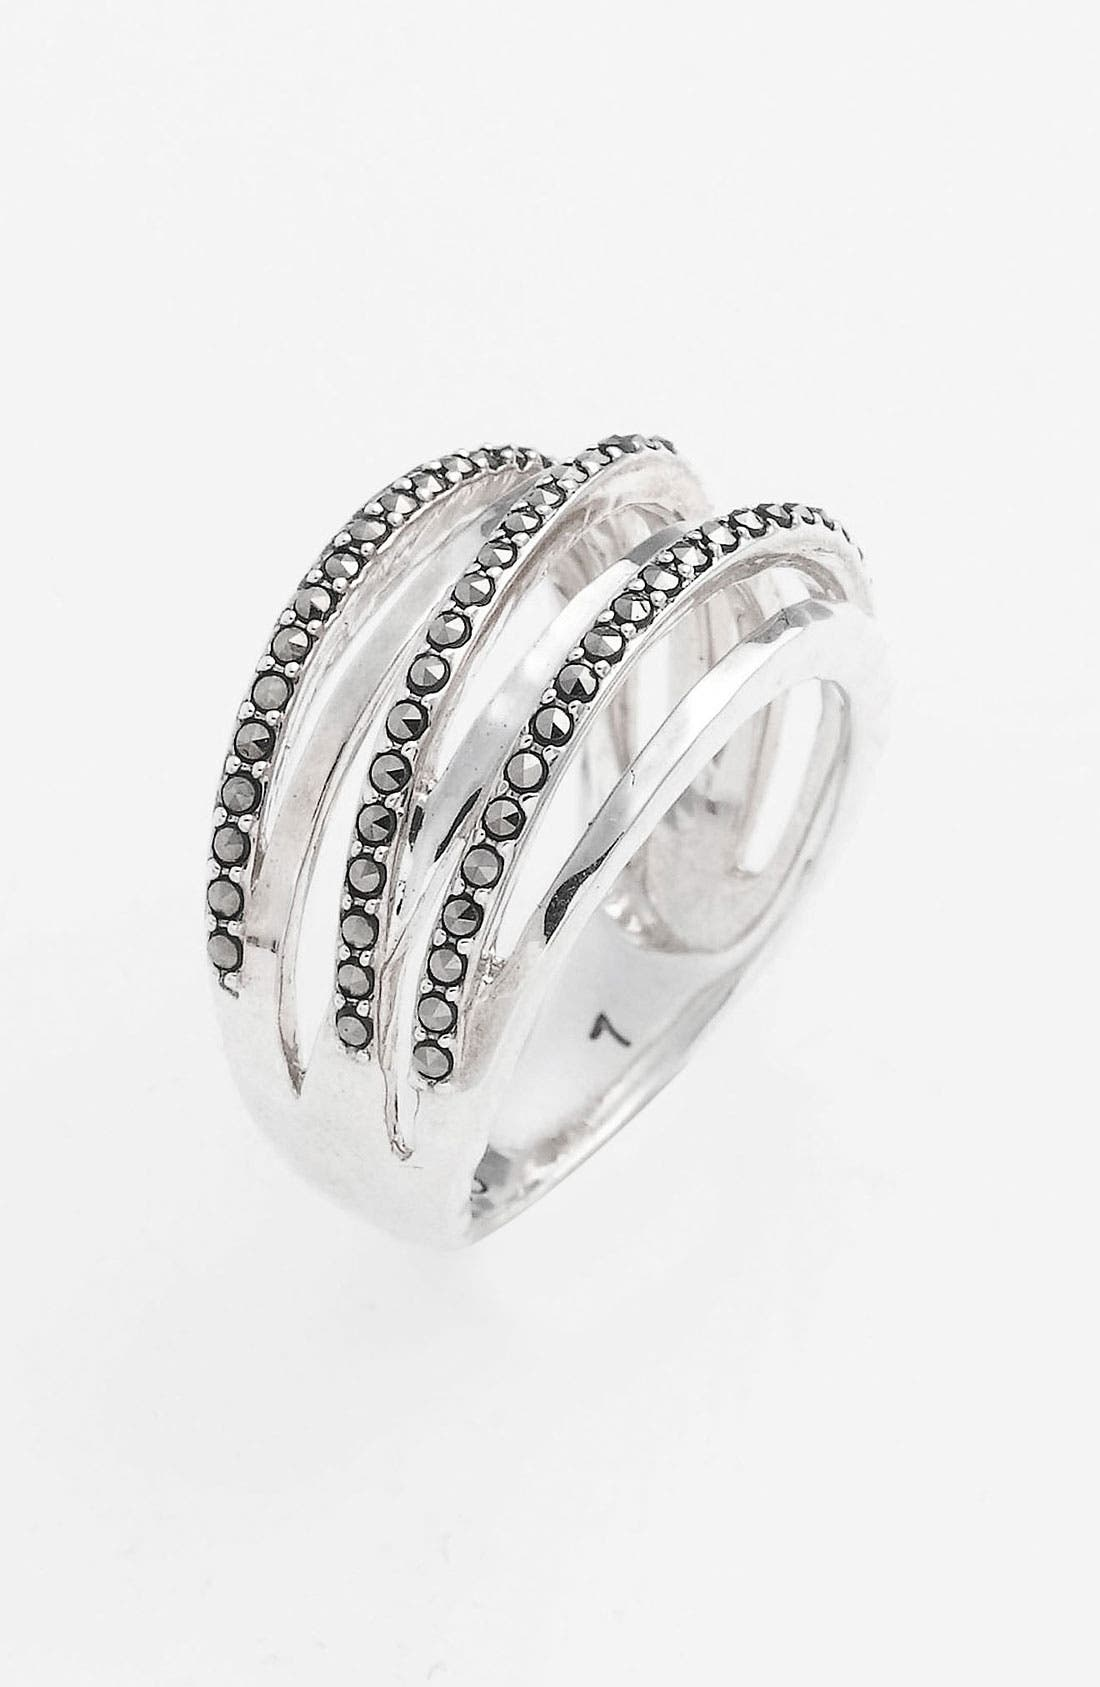 Main Image - Judith Jack 'Fluidity' Ring